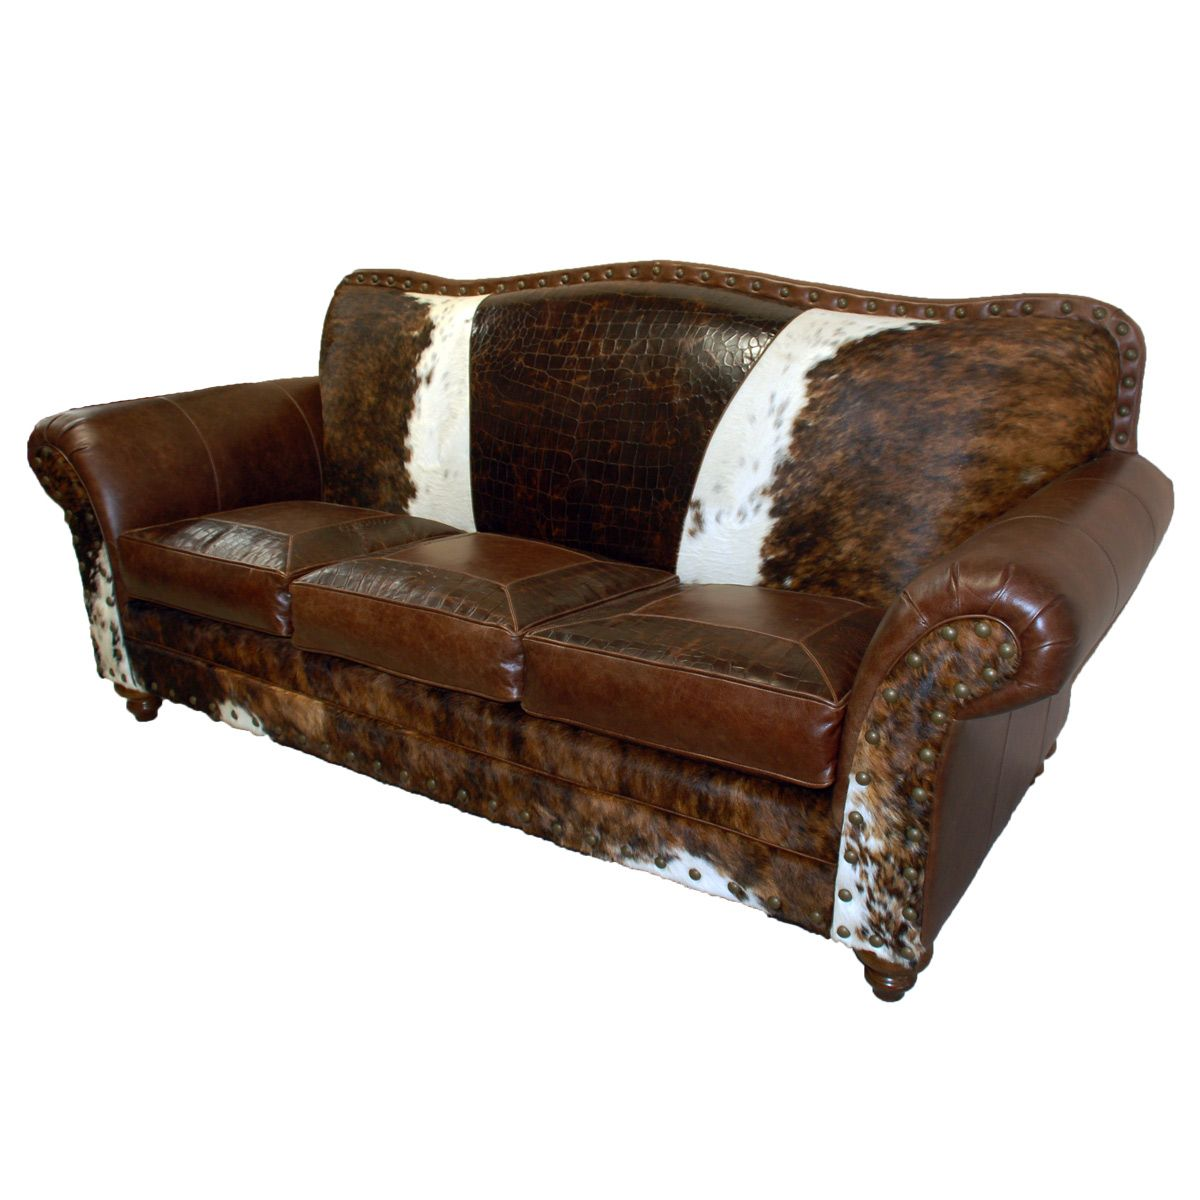 Vaquero 3 Cushion Sofa - 10 Ft.